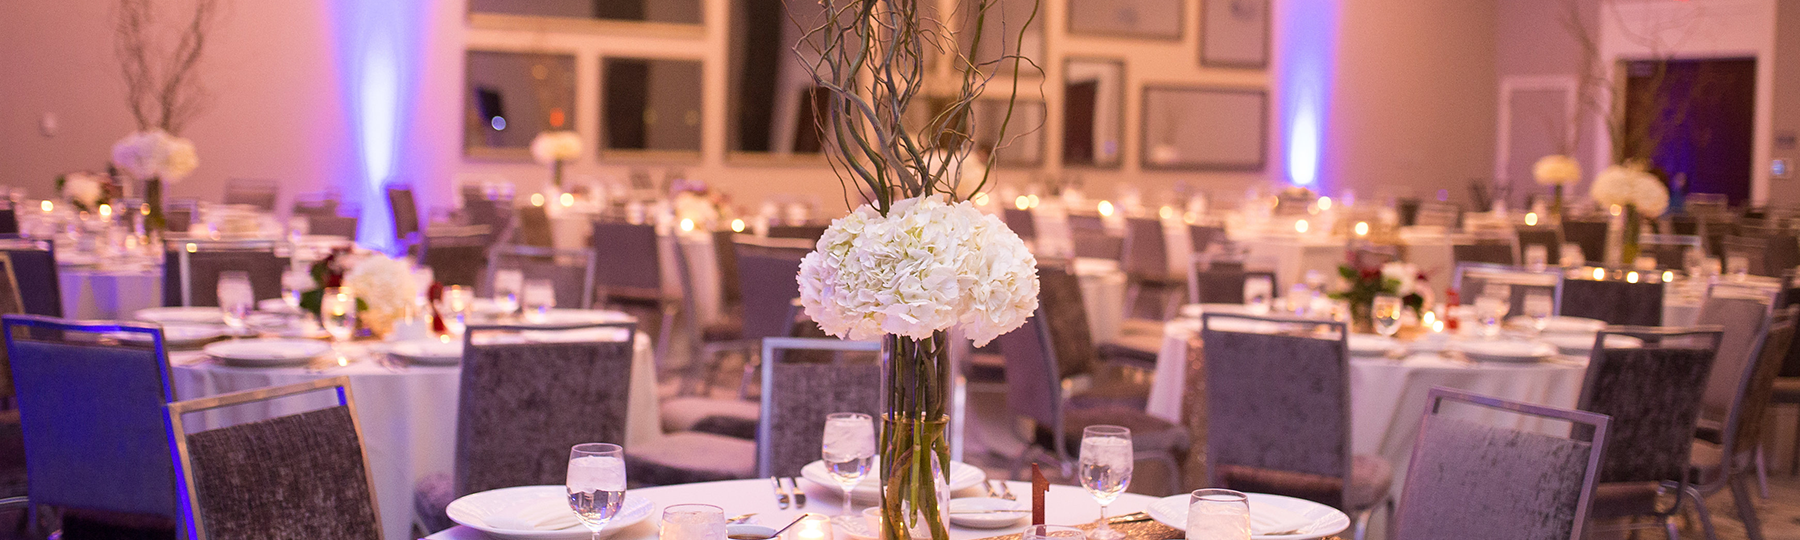 Ballroom with tables and centerpieces